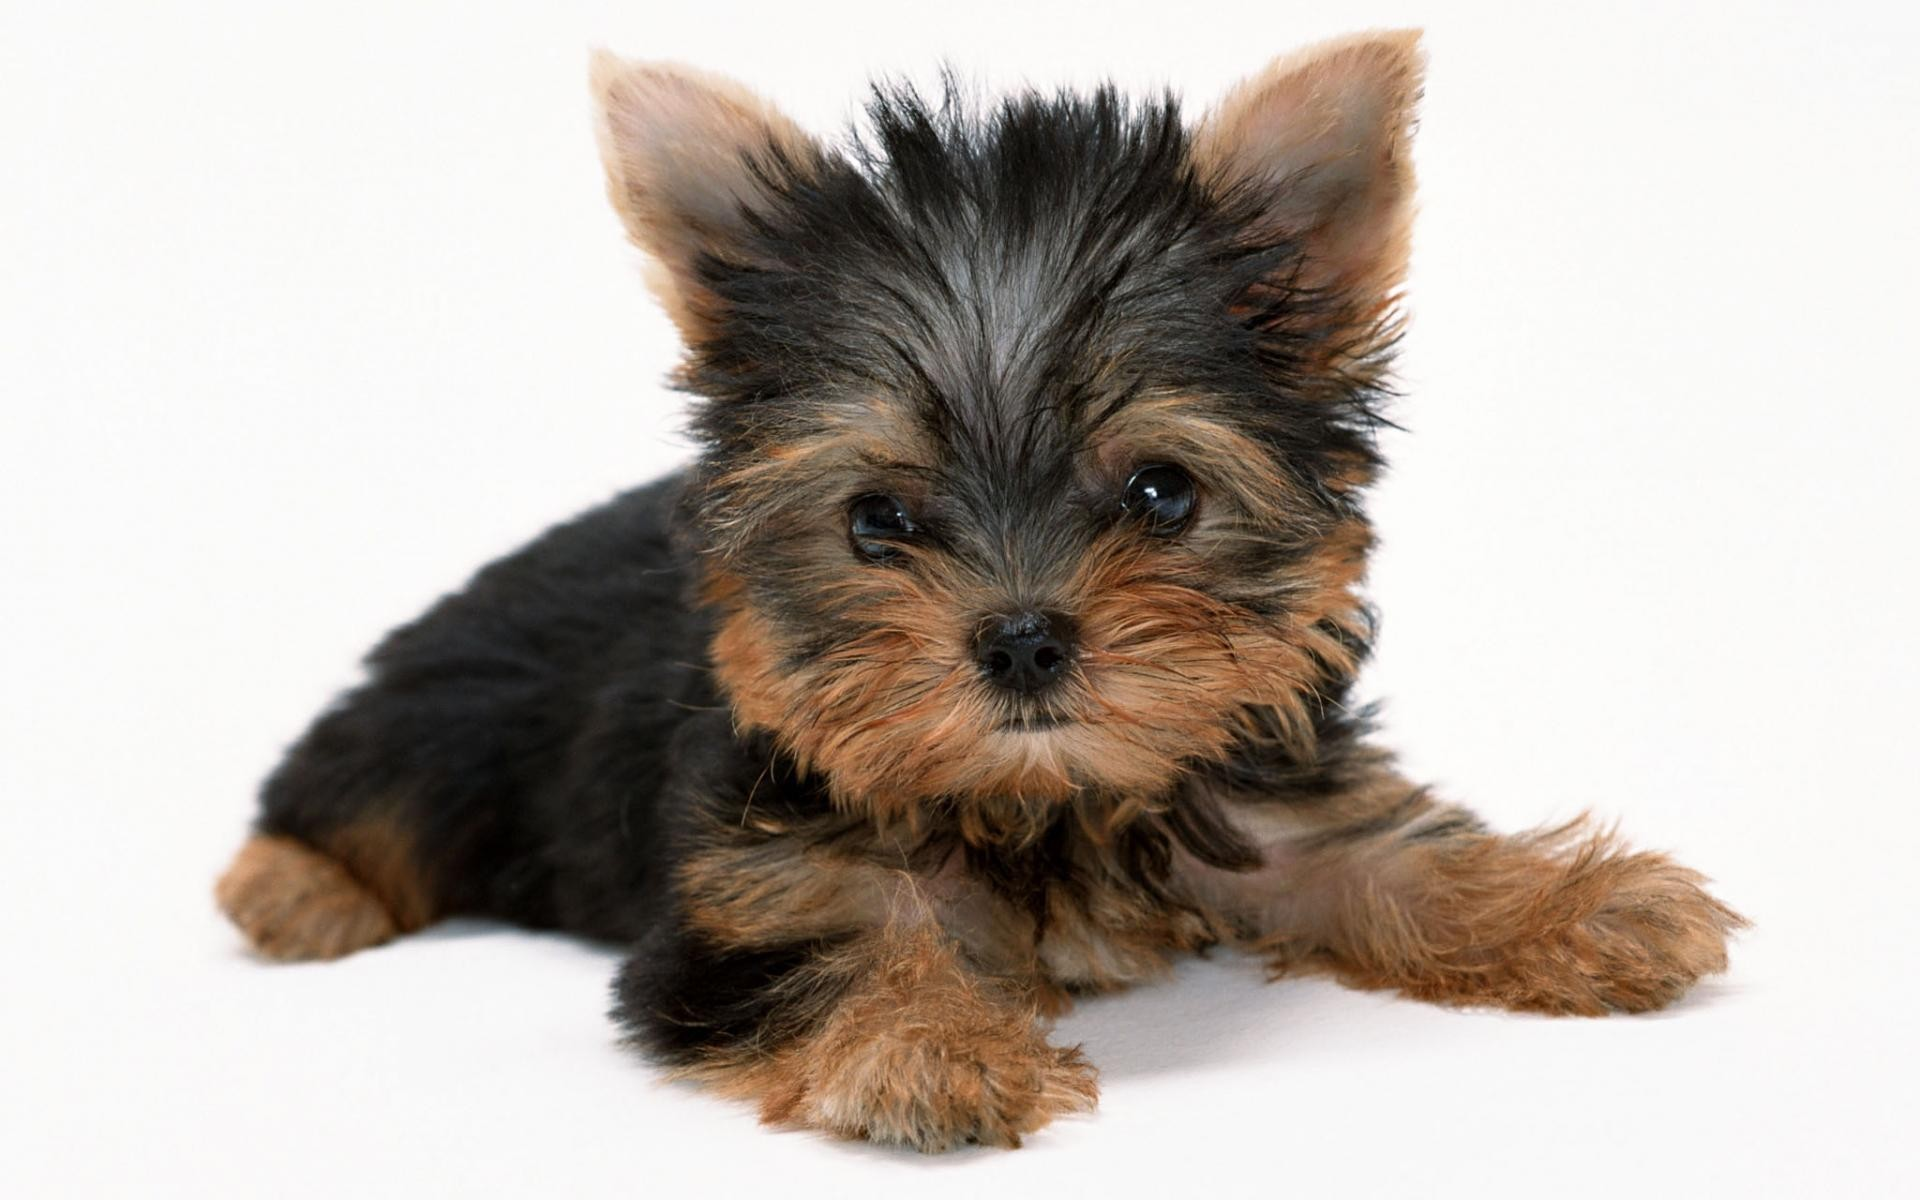 Teacup Puppies Wallpaper 44 Images